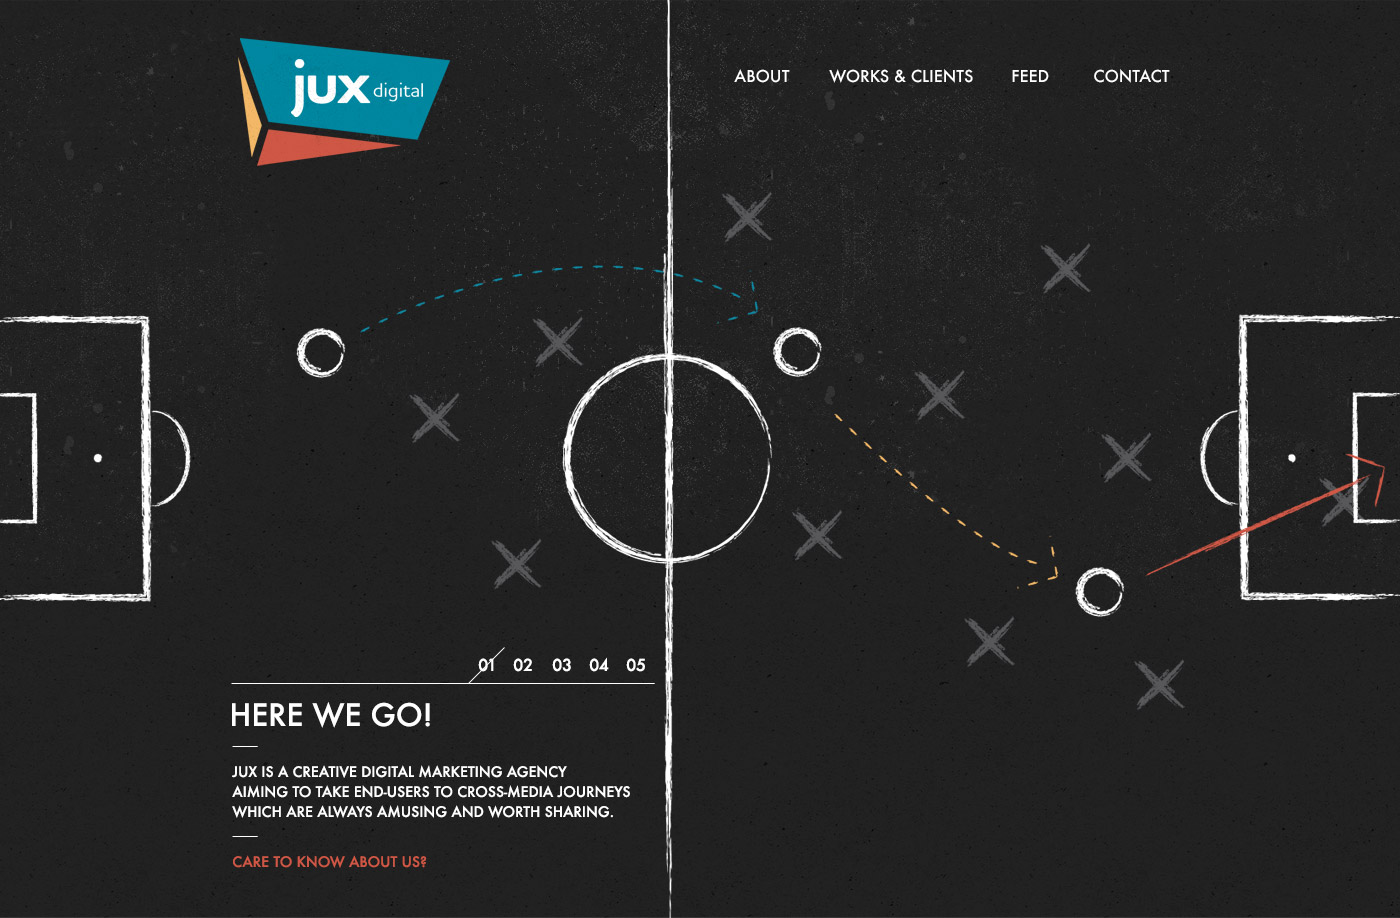 Jux Digital Website Screenshot